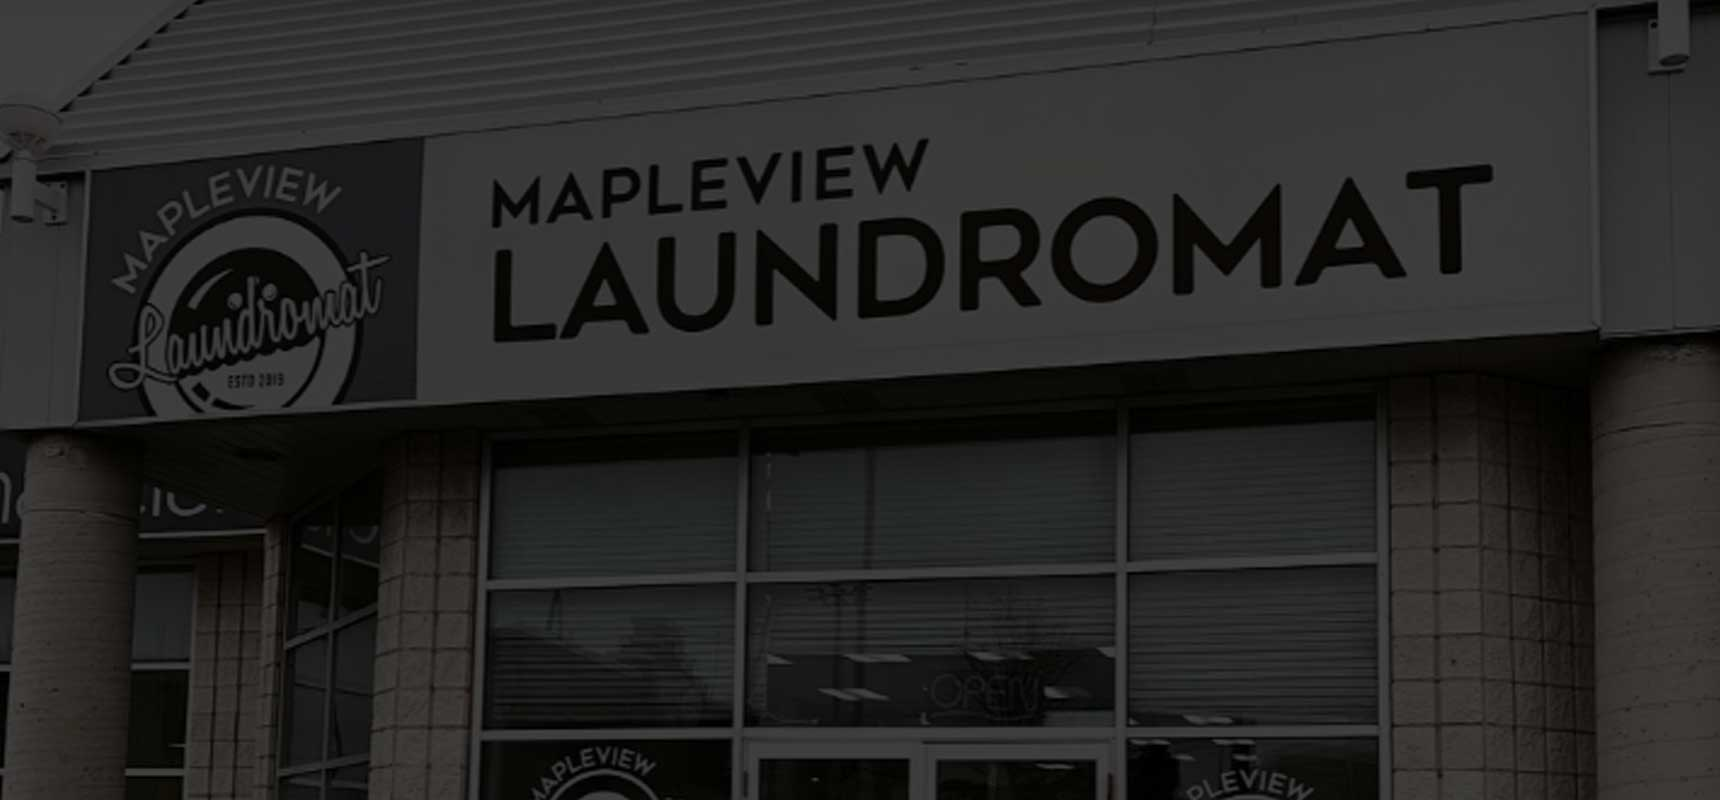 Mapleview Laundromat storefront